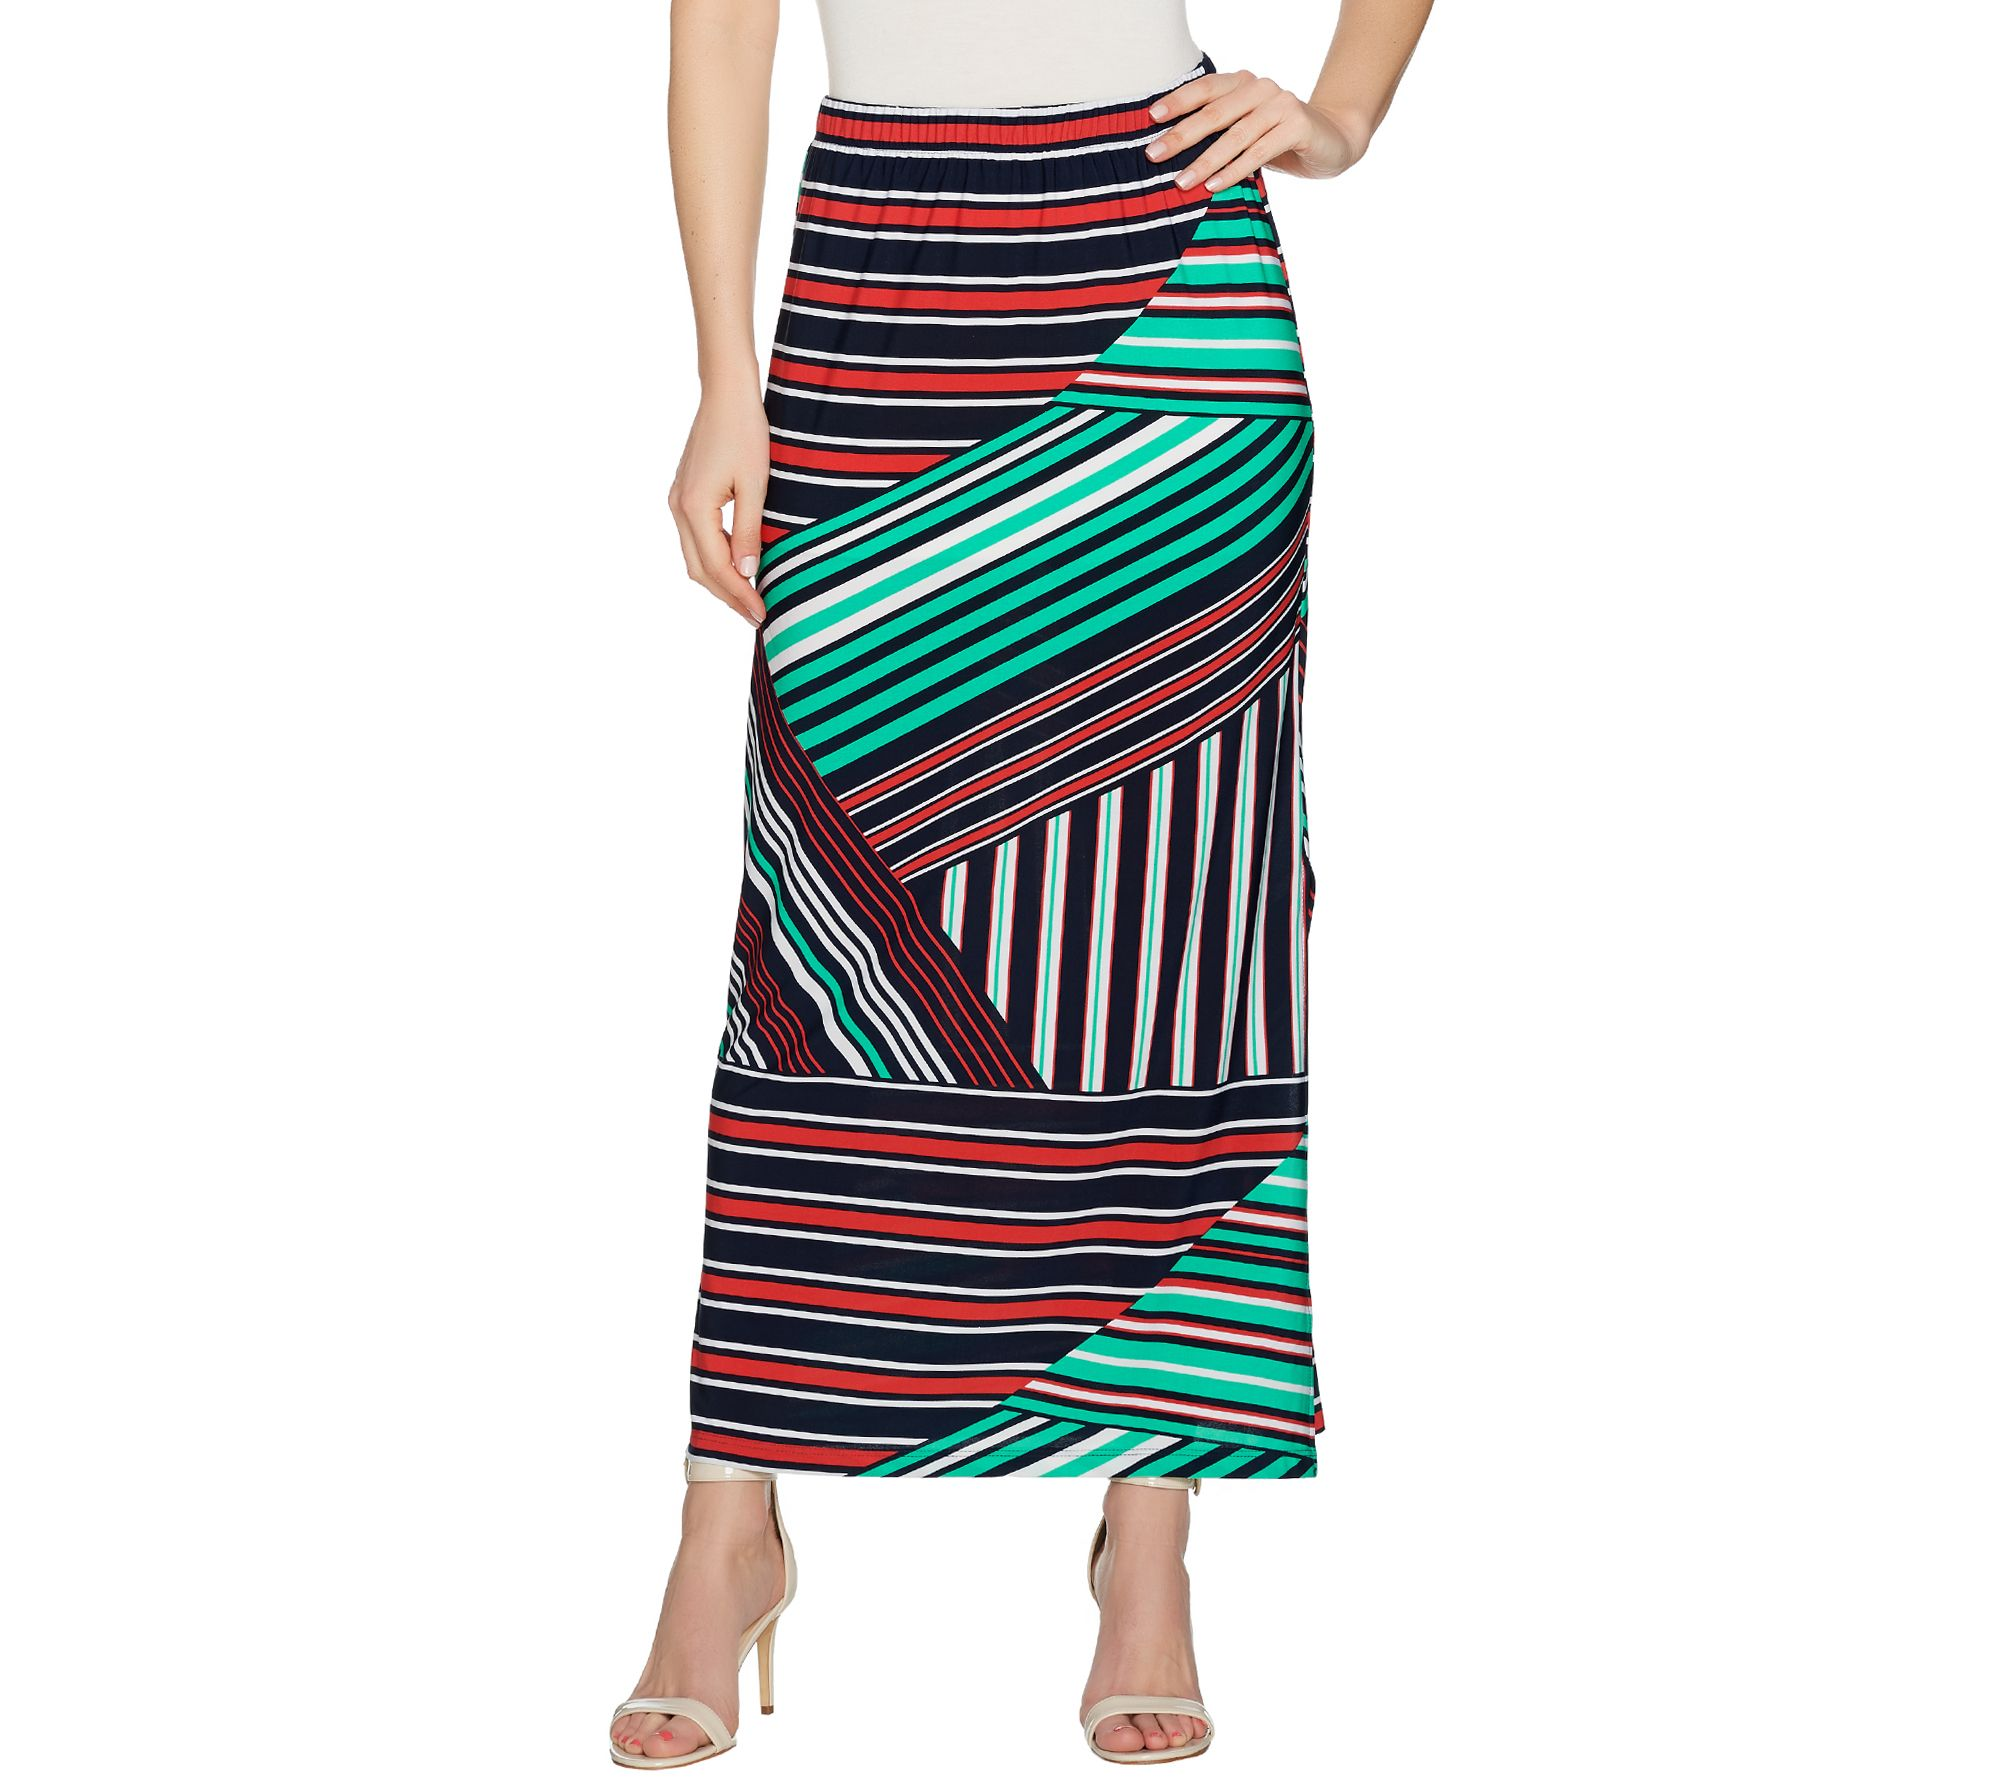 dc0a7fe48 Susan Graver Printed Liquid Knit Maxi Skirt with Side Slit — QVC.com